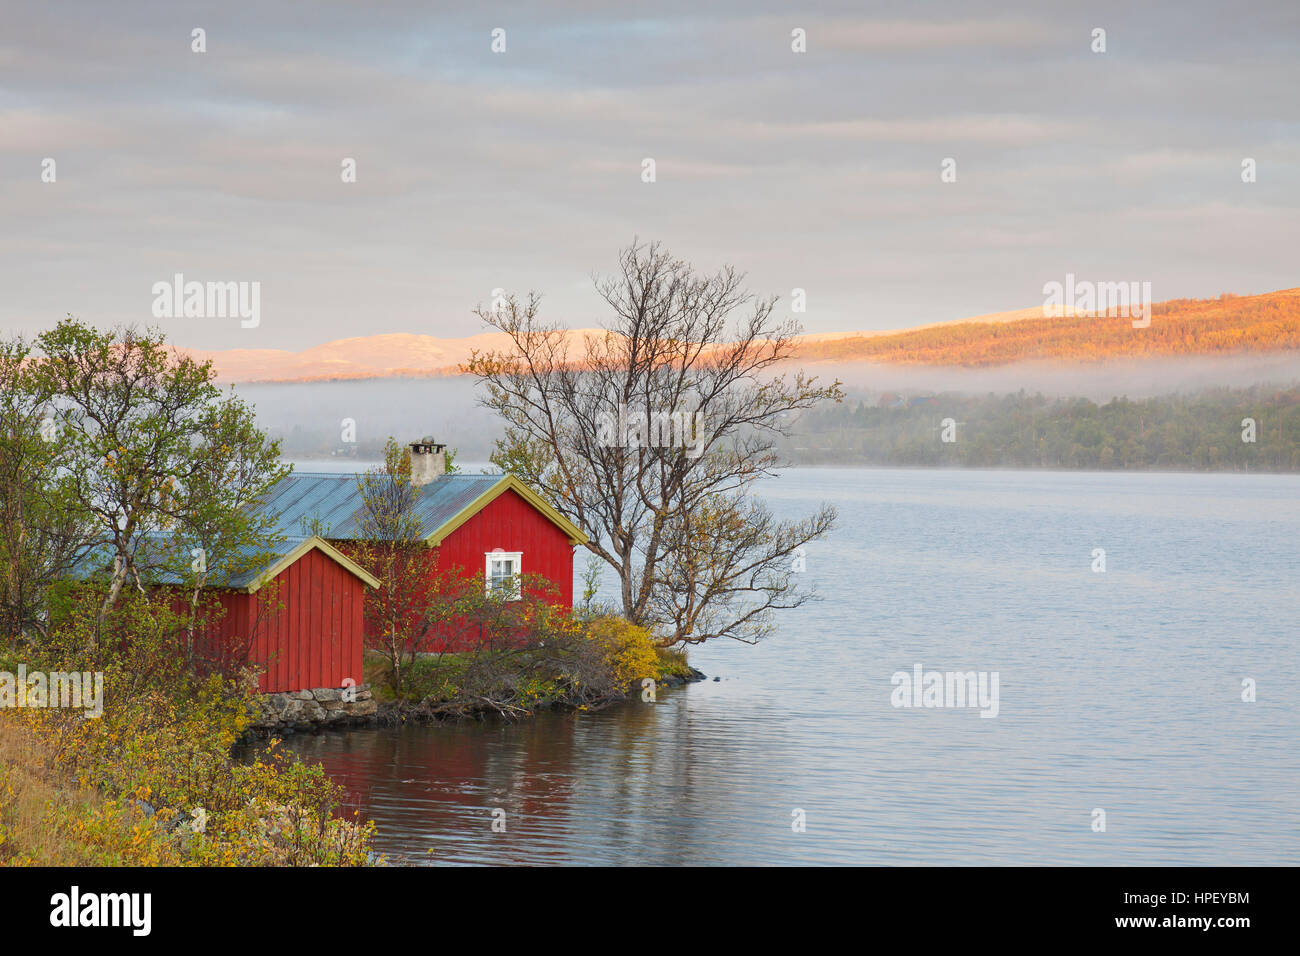 Typical red rorbu / rorbuer or fisherman's cabin along lake Avsjoen / Avsjøen in autumn at Dovrefjell, - Stock Image